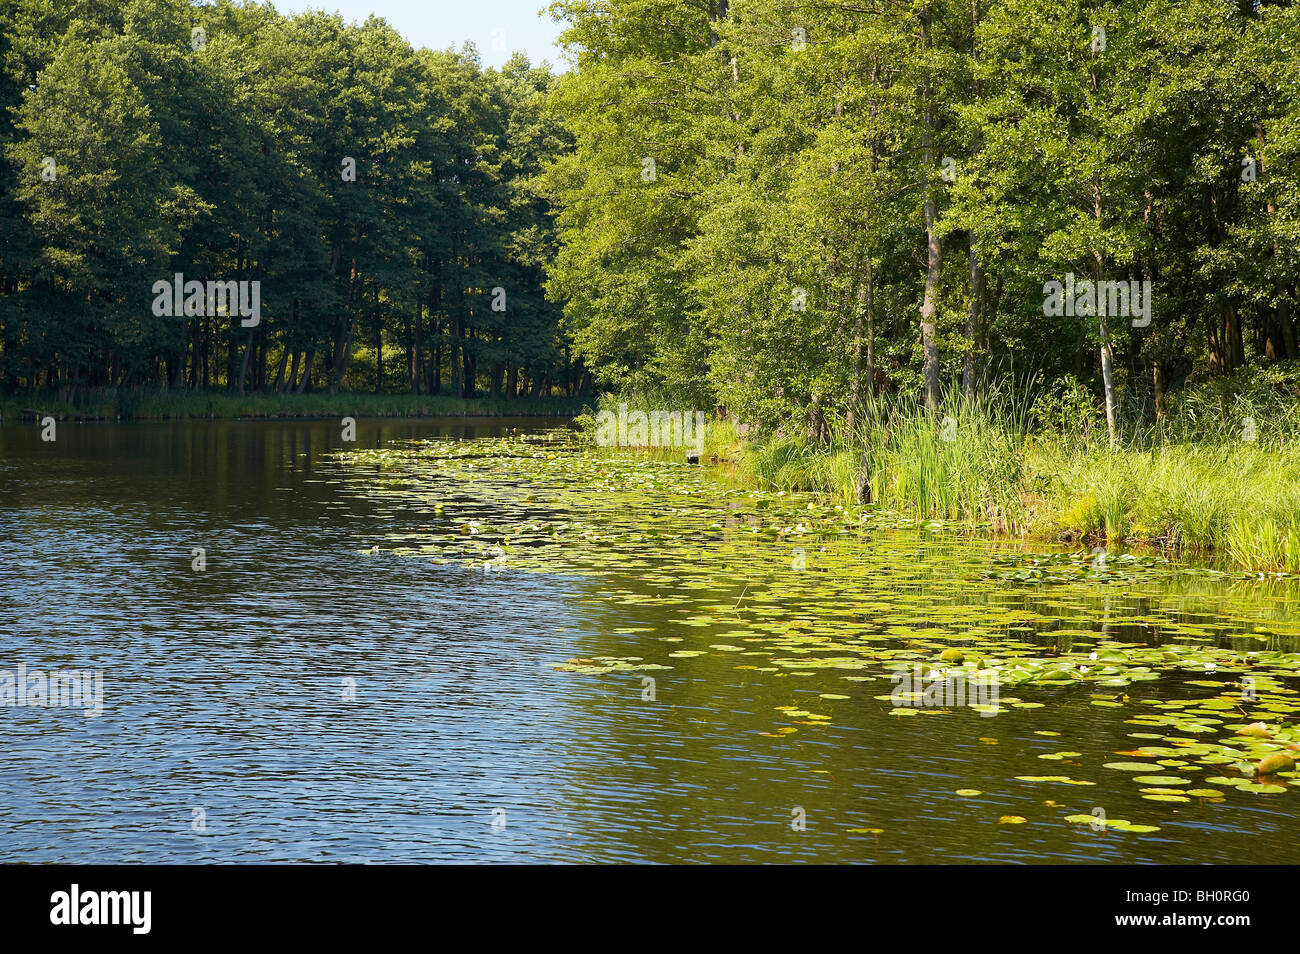 with the houseboat  on the 'Templiner Gewaesser', Roedelinsee, Brandenburg, Germany, Europe - Stock Image